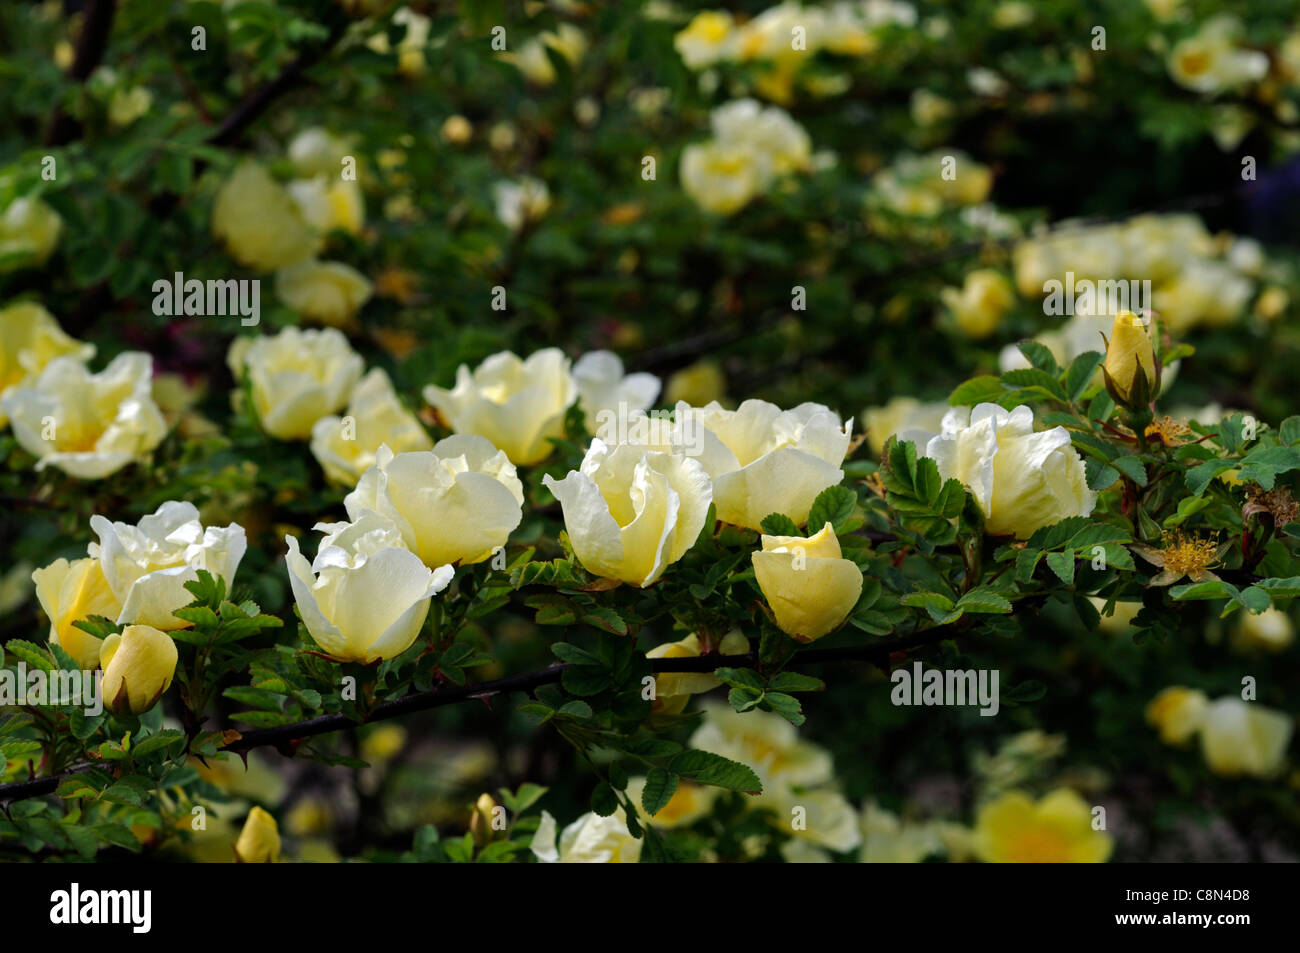 Rosa xanthina Canary Bird yellow flower shrub rose clusters flowers fern-like foliage arching thorny stems - Stock Image